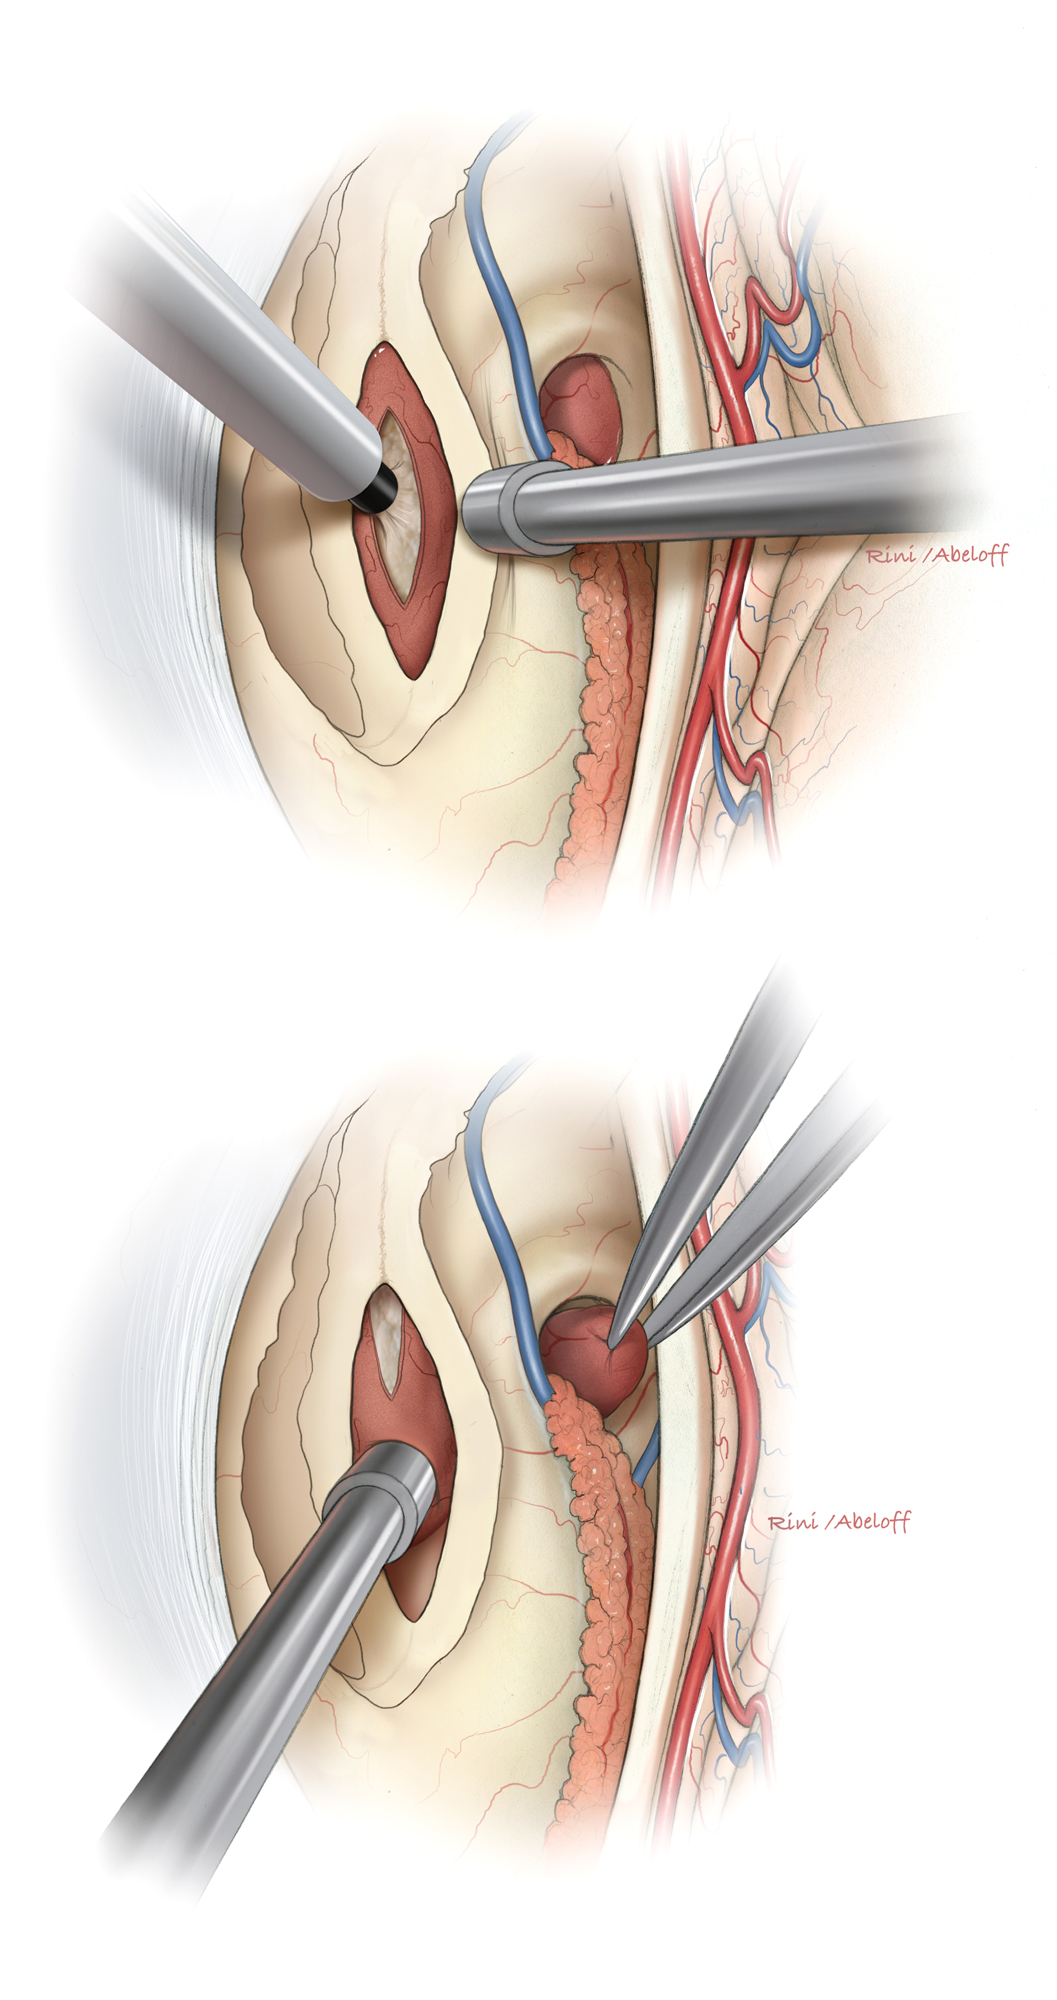 Figure 7: The ultrasonic aspirator is needed to remove the tumor without placing the vital surrounding structures including the walls of the third ventricle under undue traction (top). The enlarged foramen of Monroe may be accessed for removing the anterior pole of the tumor (bottom).